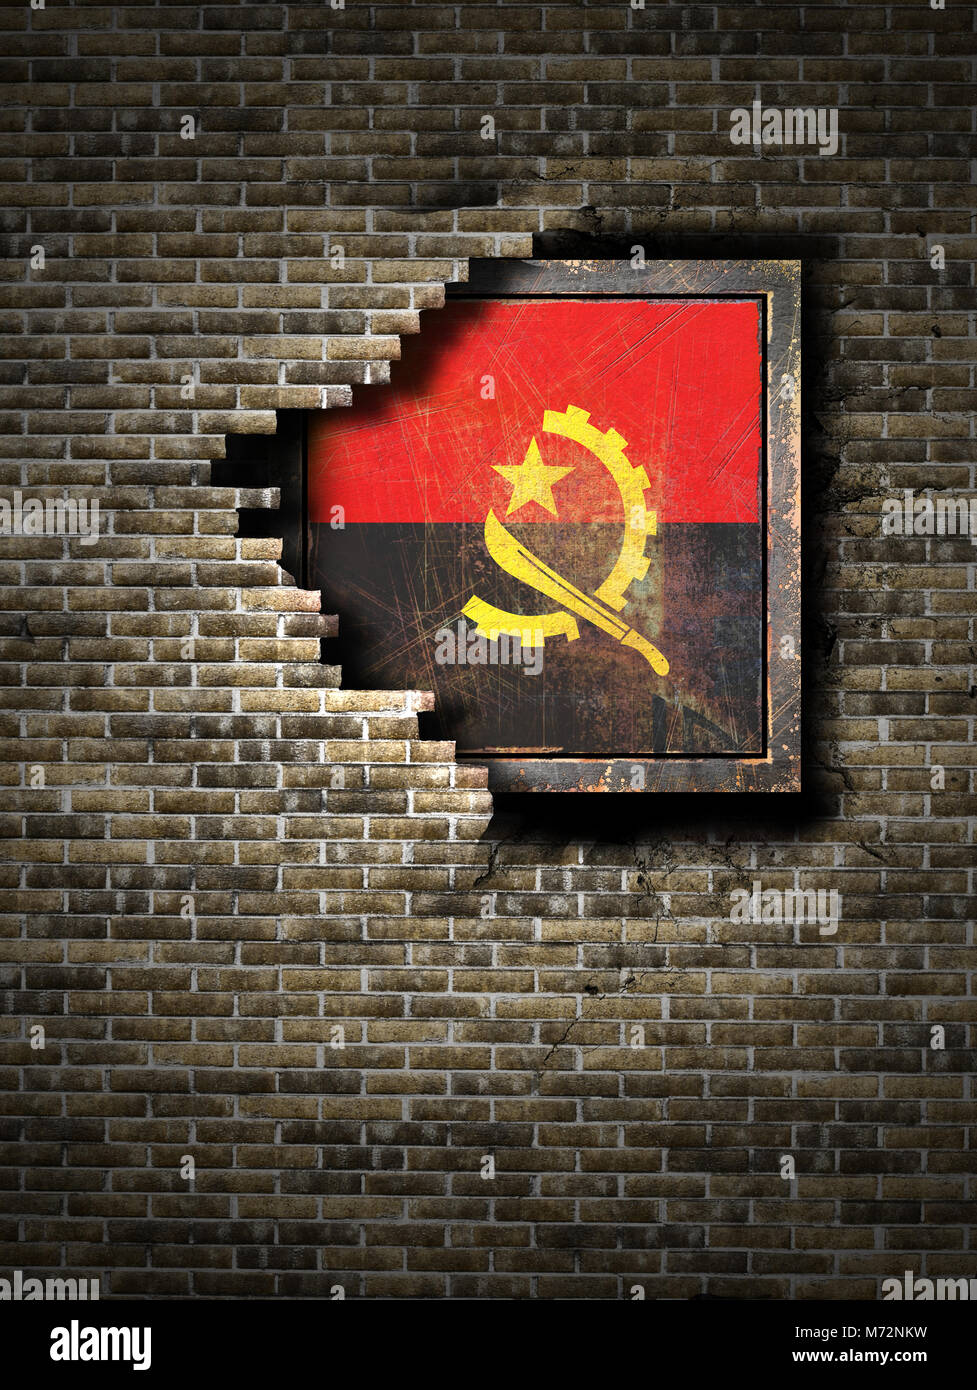 3d rendering of an Angola flag over a rusty metallic plate embedded on an old brick wall - Stock Image